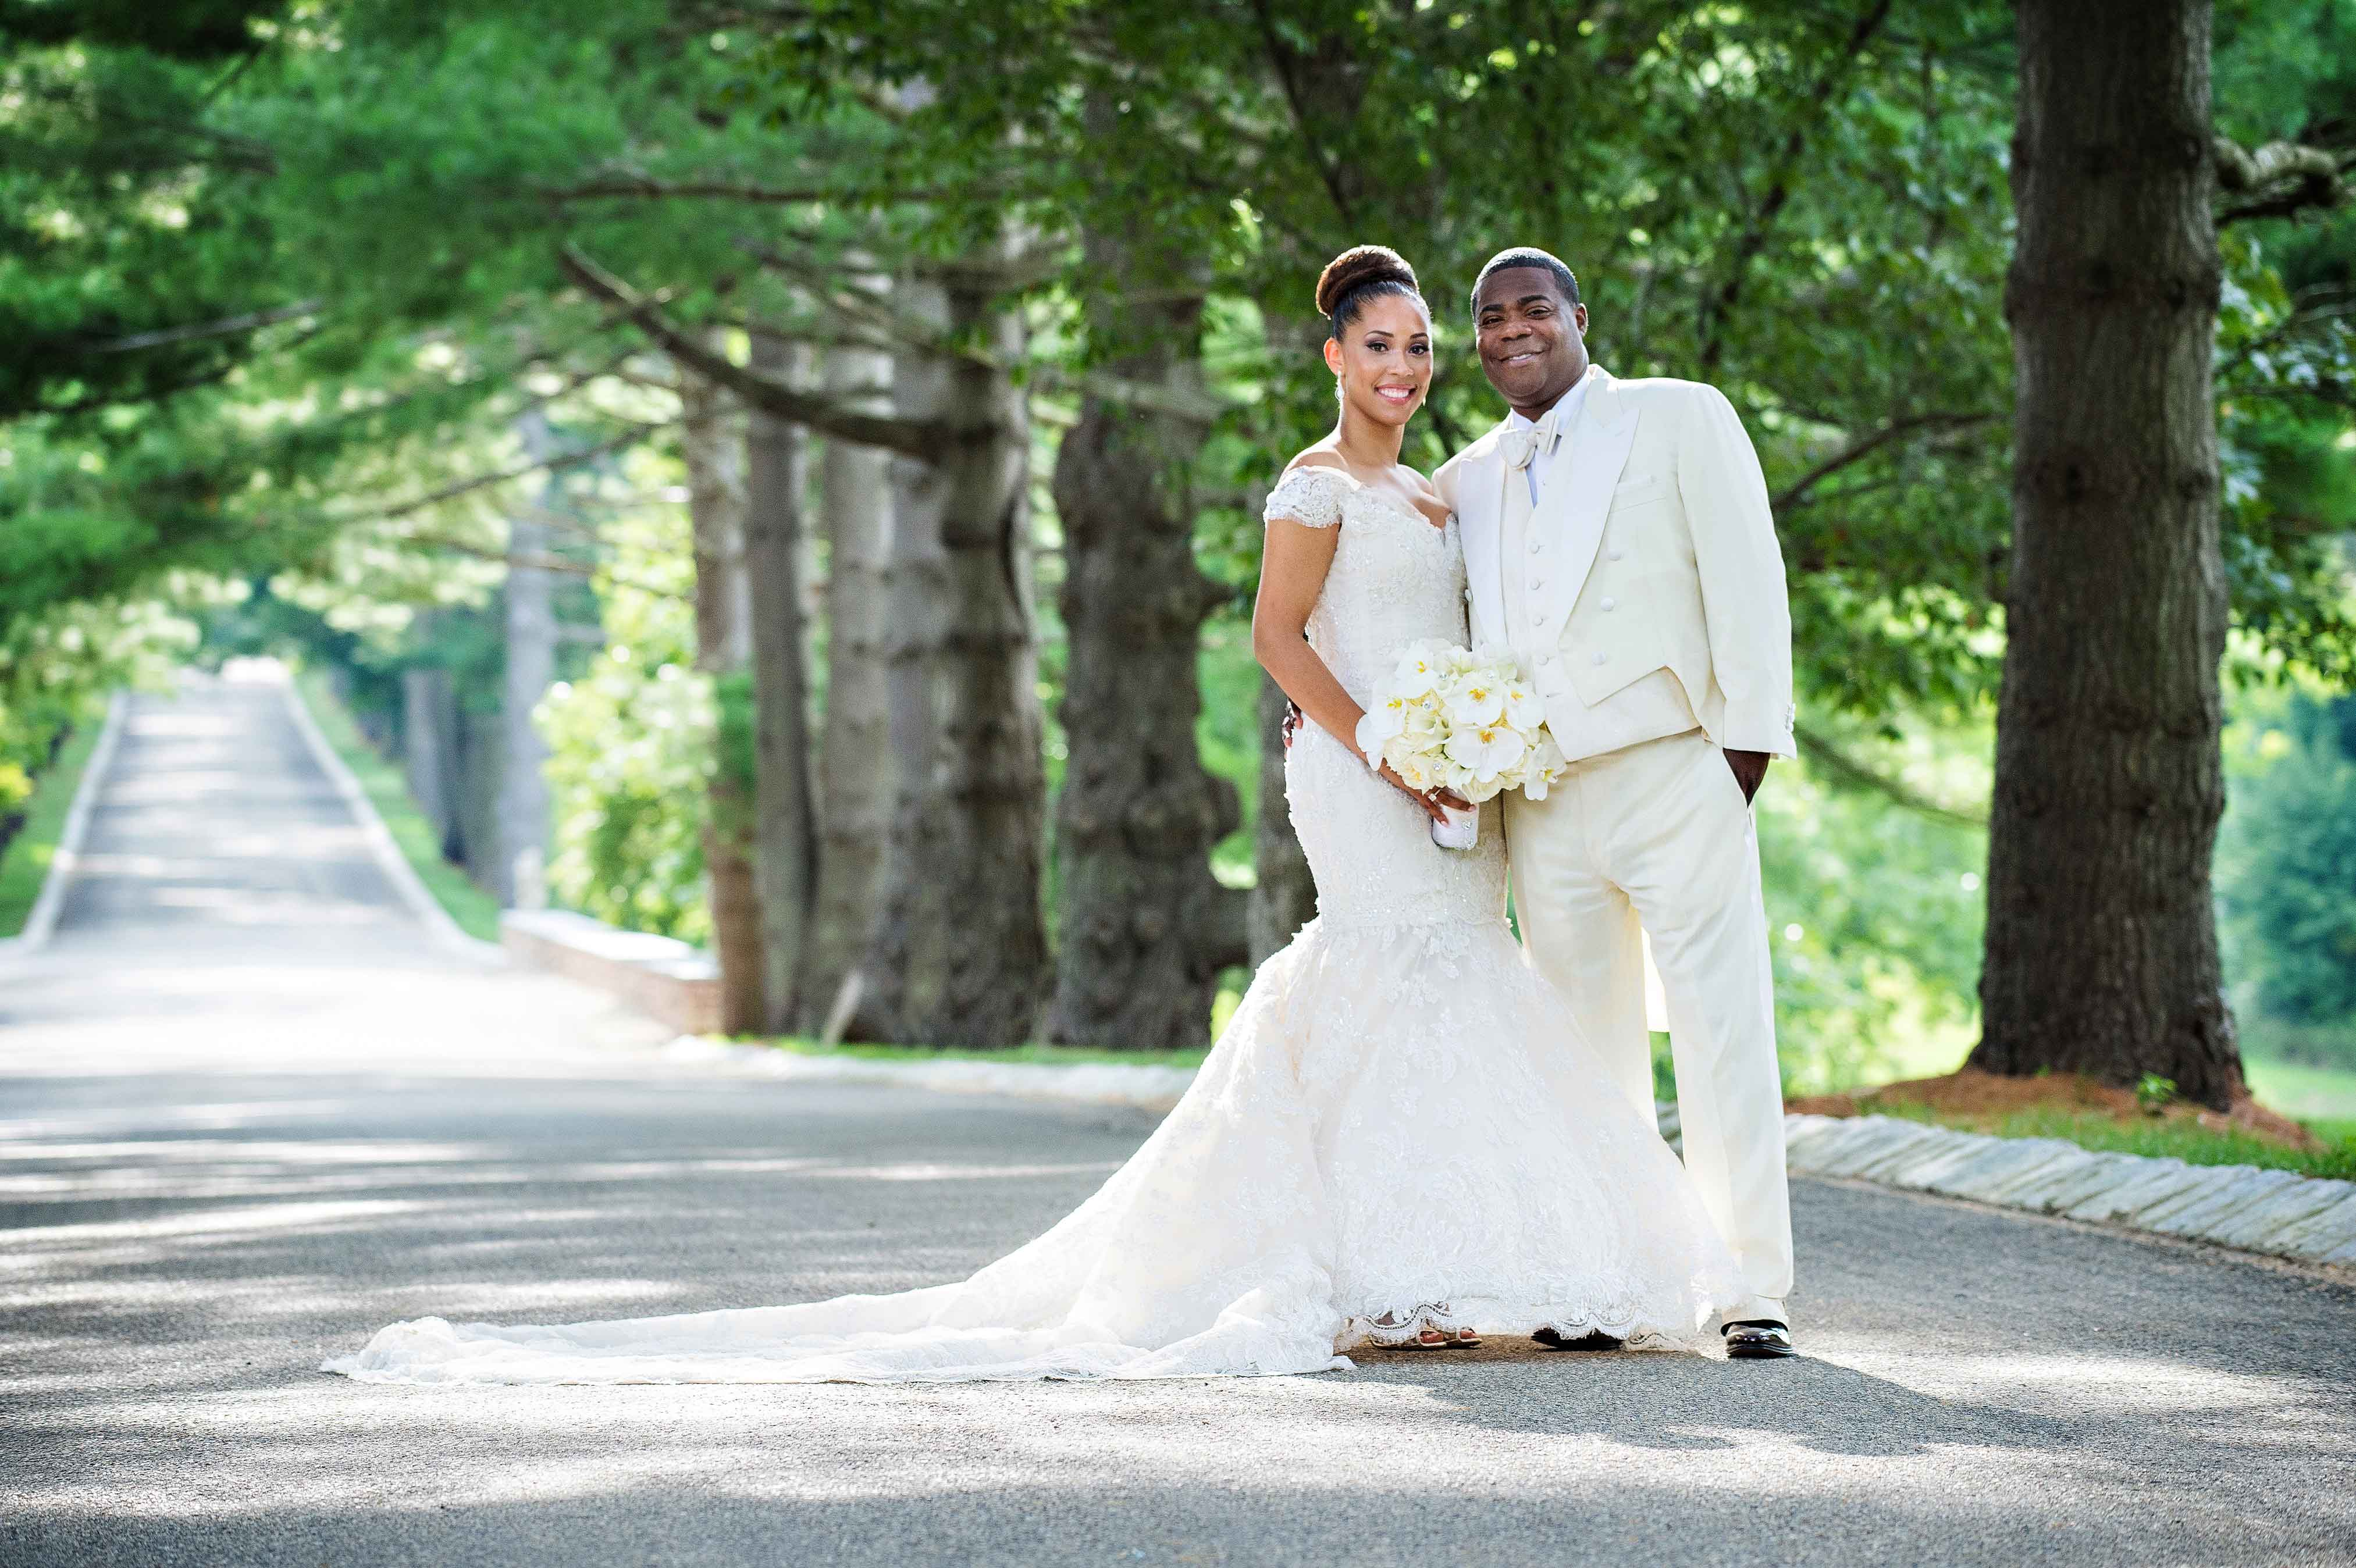 Tracy Morgan and Megan Wollover wedding photo